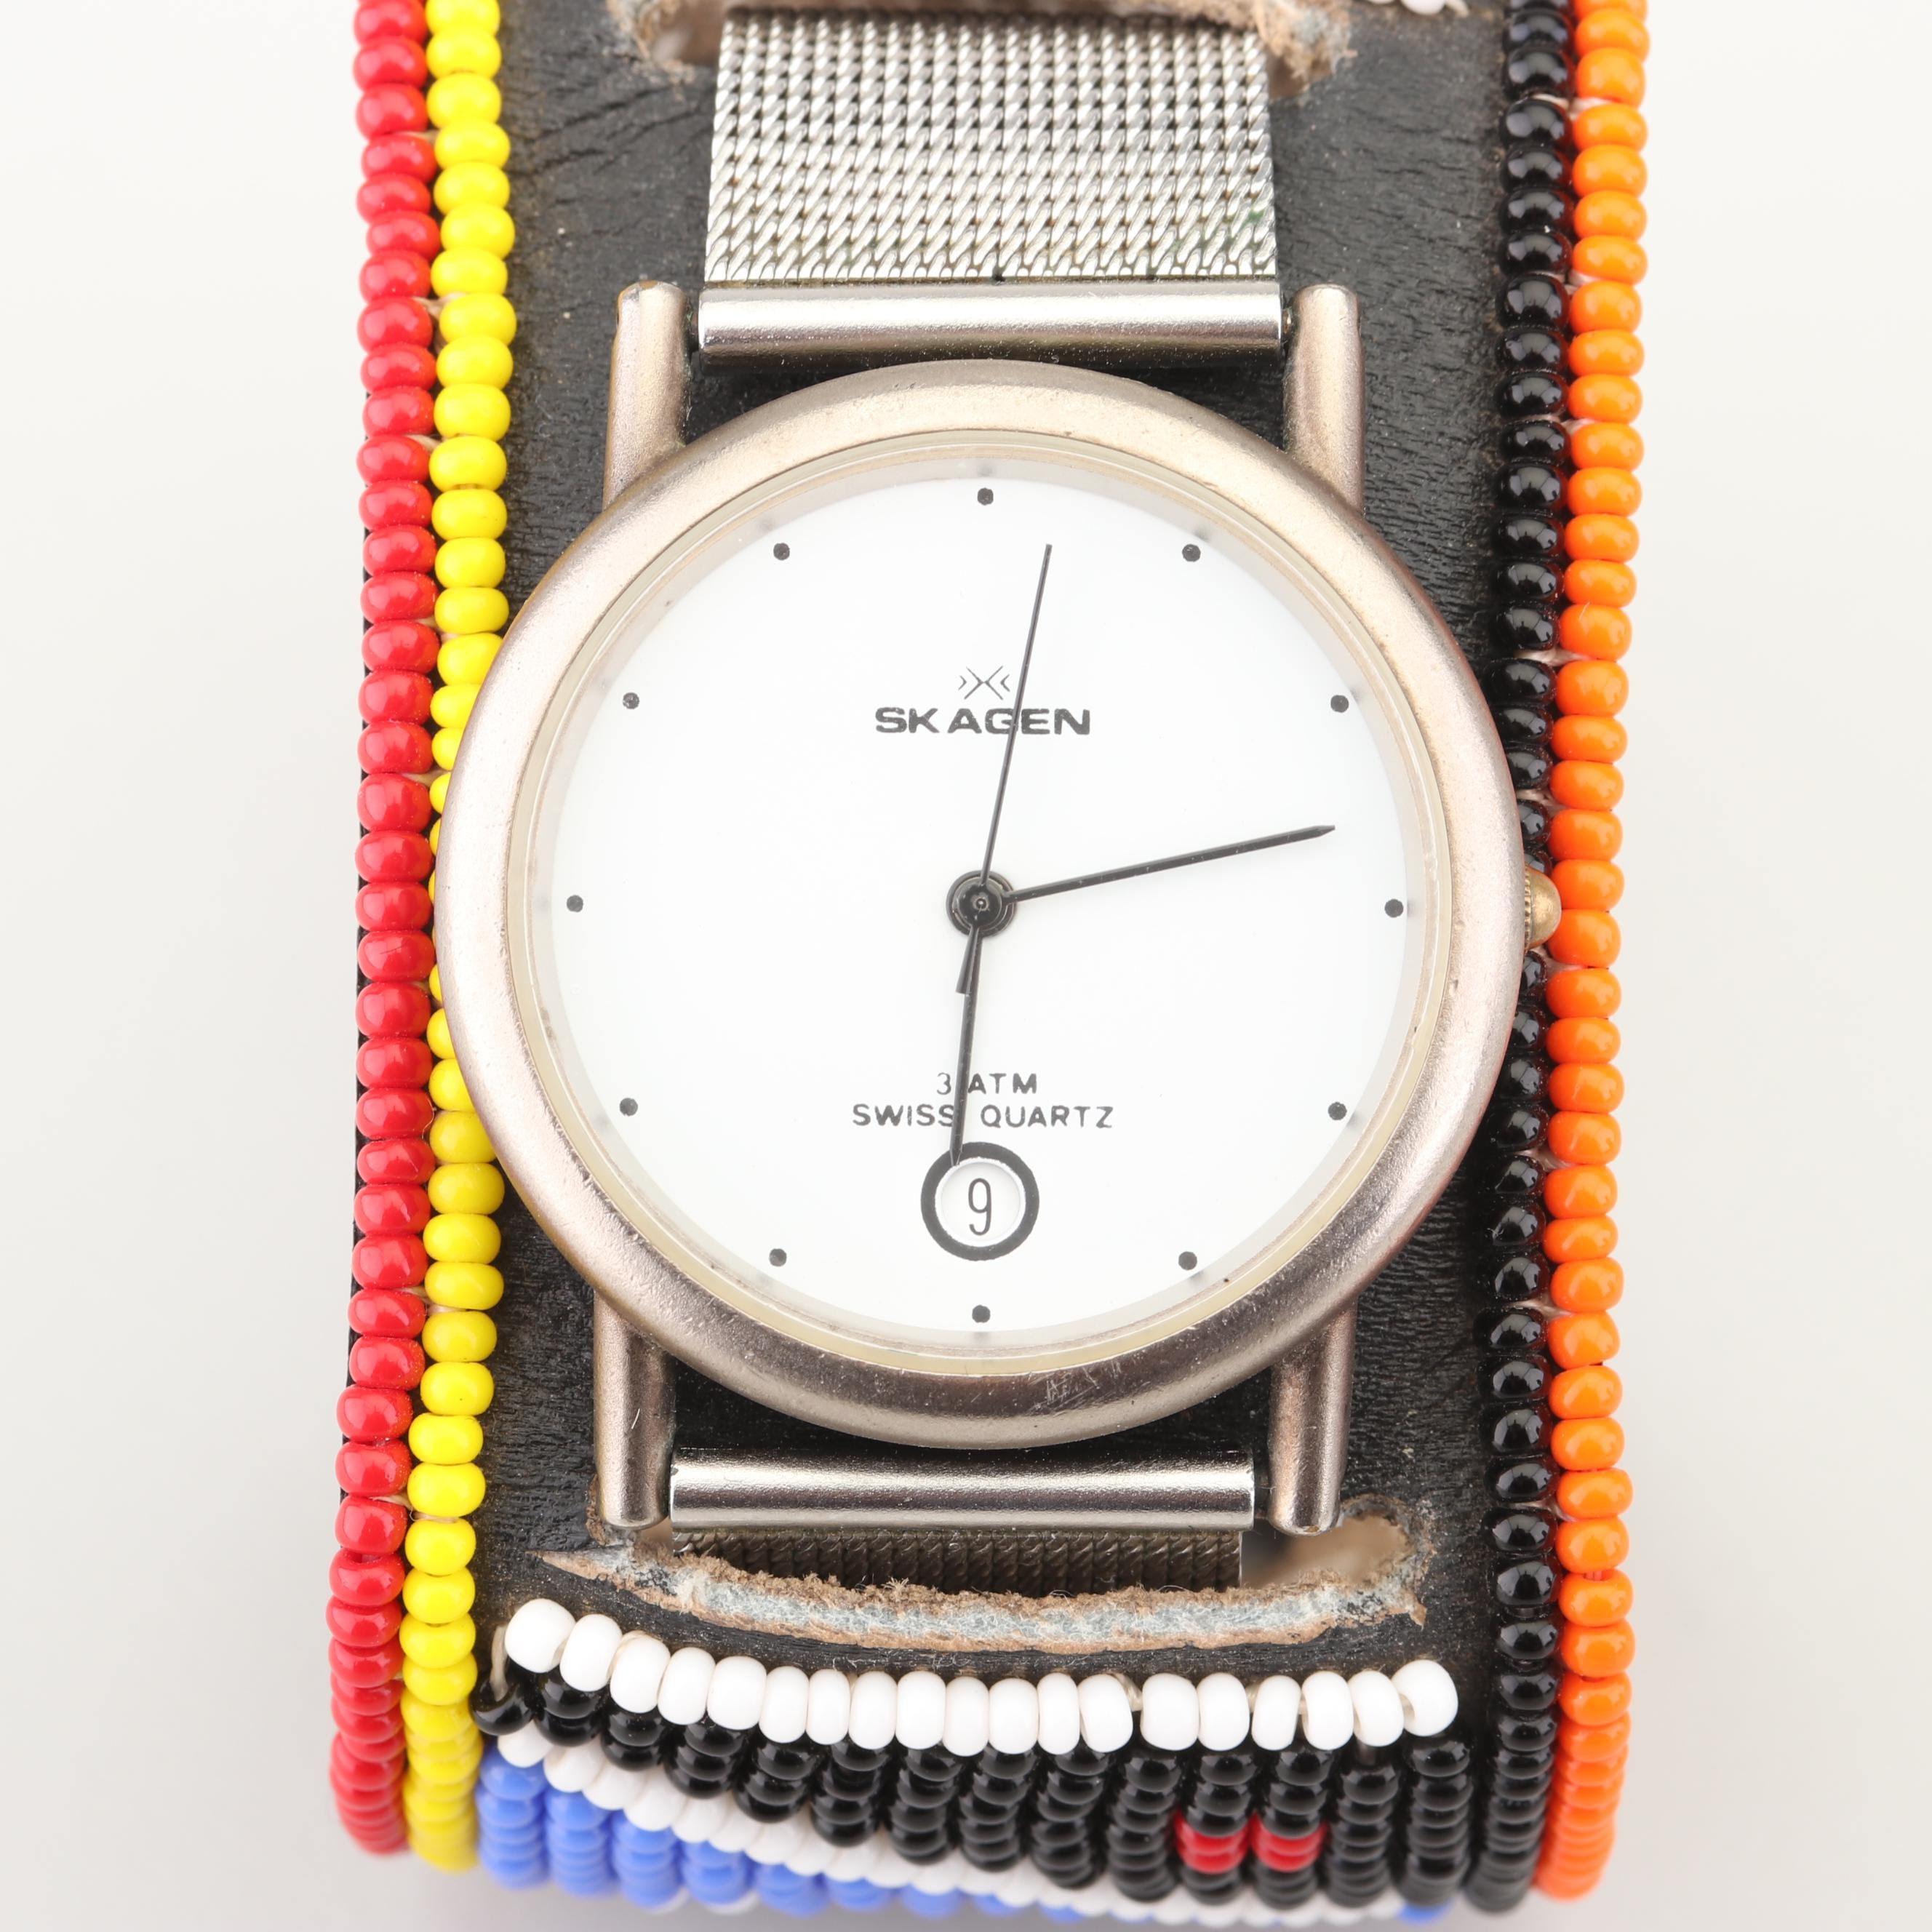 Skagen Wristwatch with Beaded Band